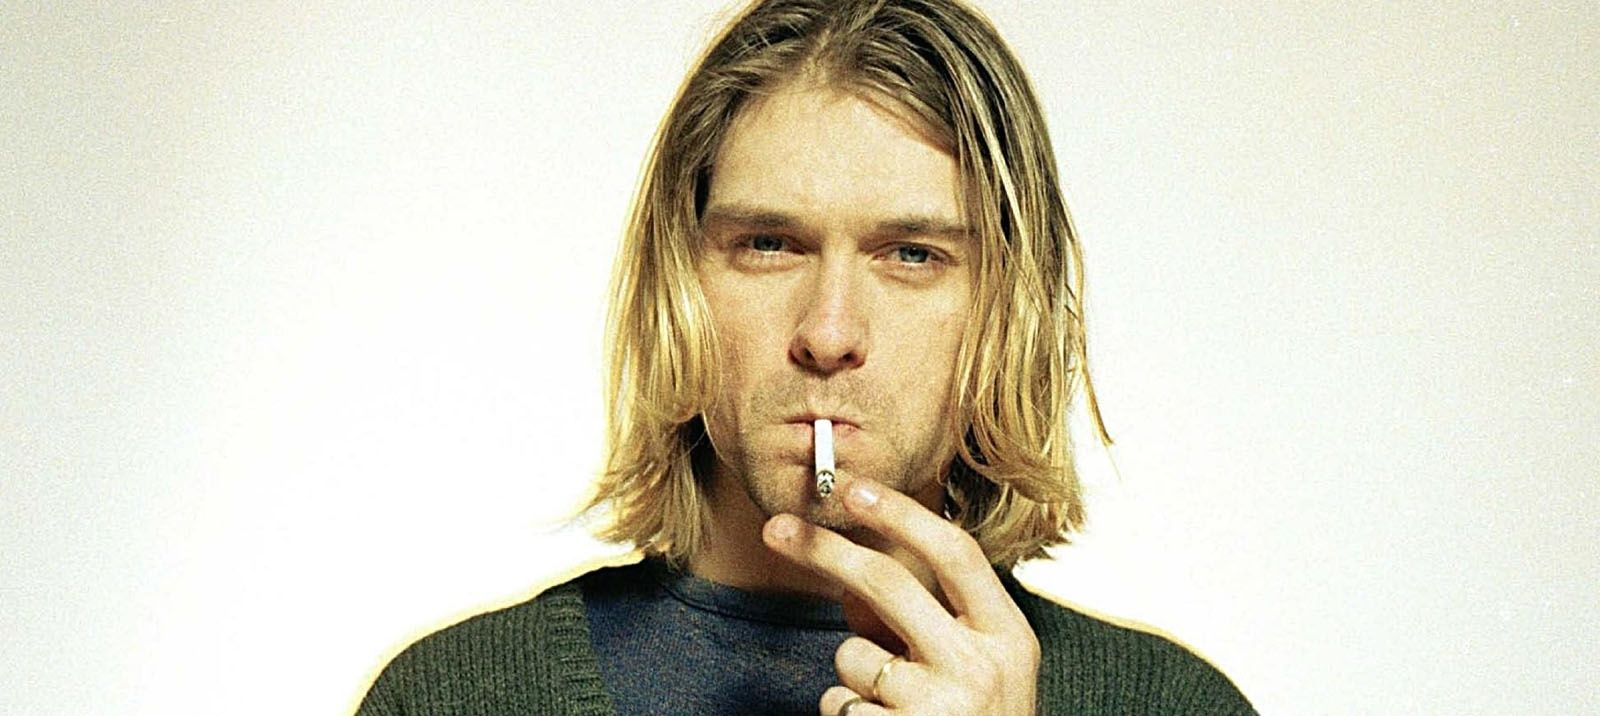 Kurt Cobain documentary 'Montage of Heck' to air on HBO in 2015